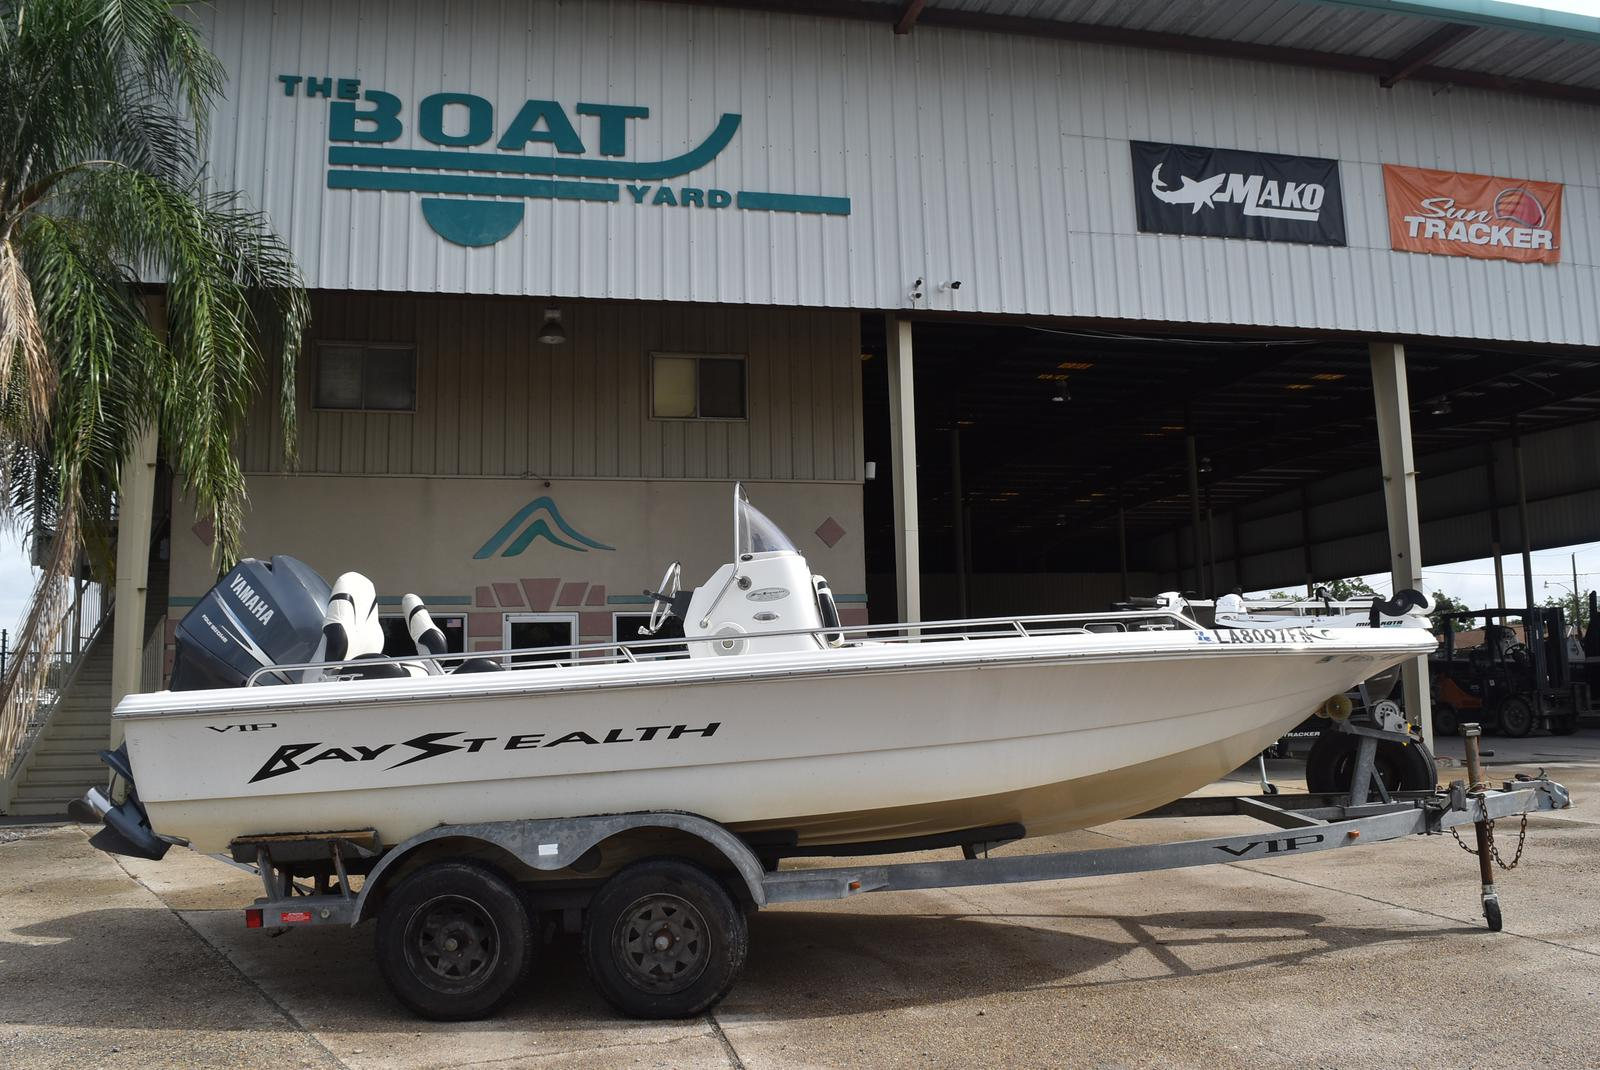 2006 Bay Stealth boat for sale, model of the boat is 2030 & Image # 12 of 12